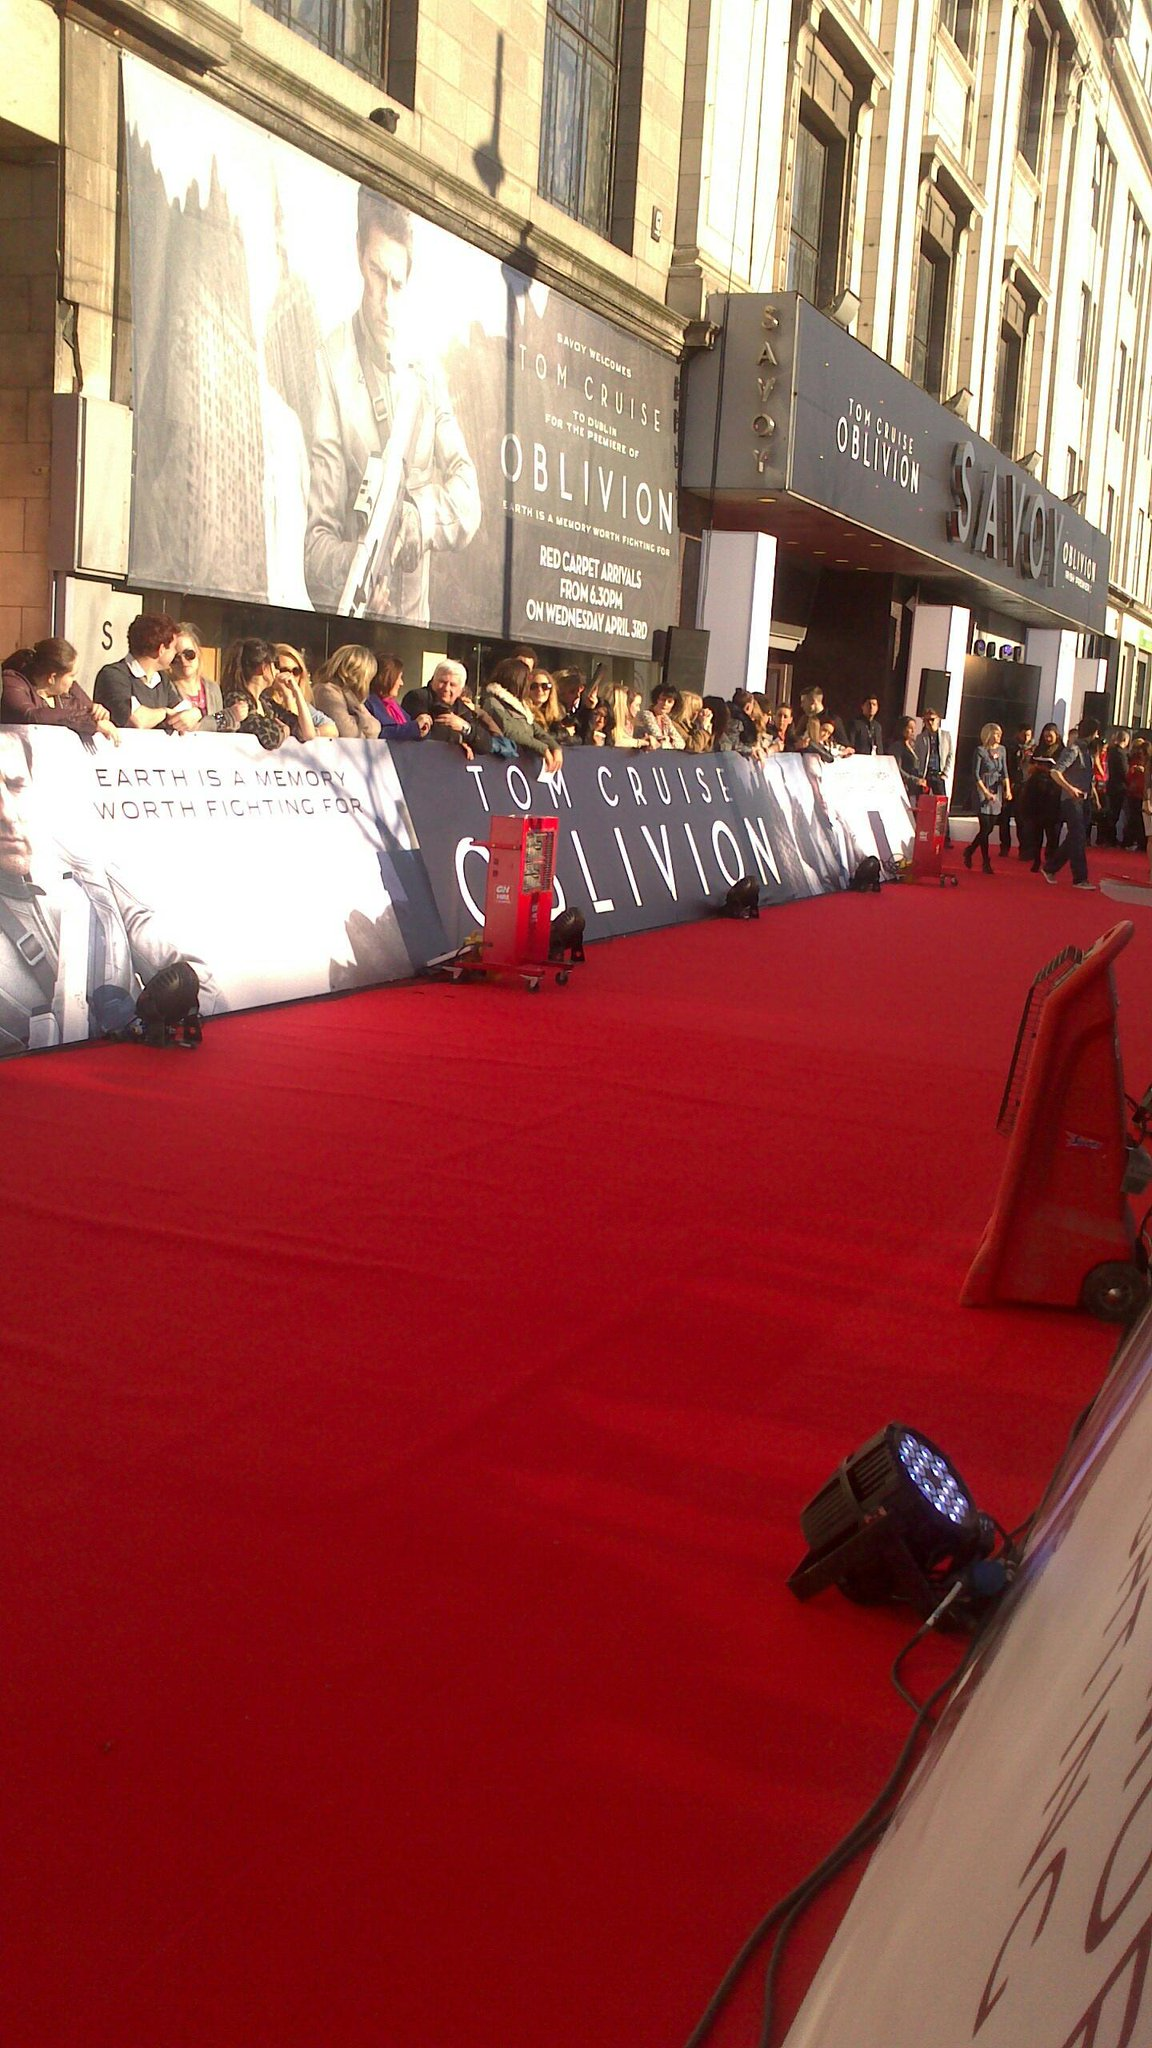 Twitter / orla_oleary: At the premiere at the front ...